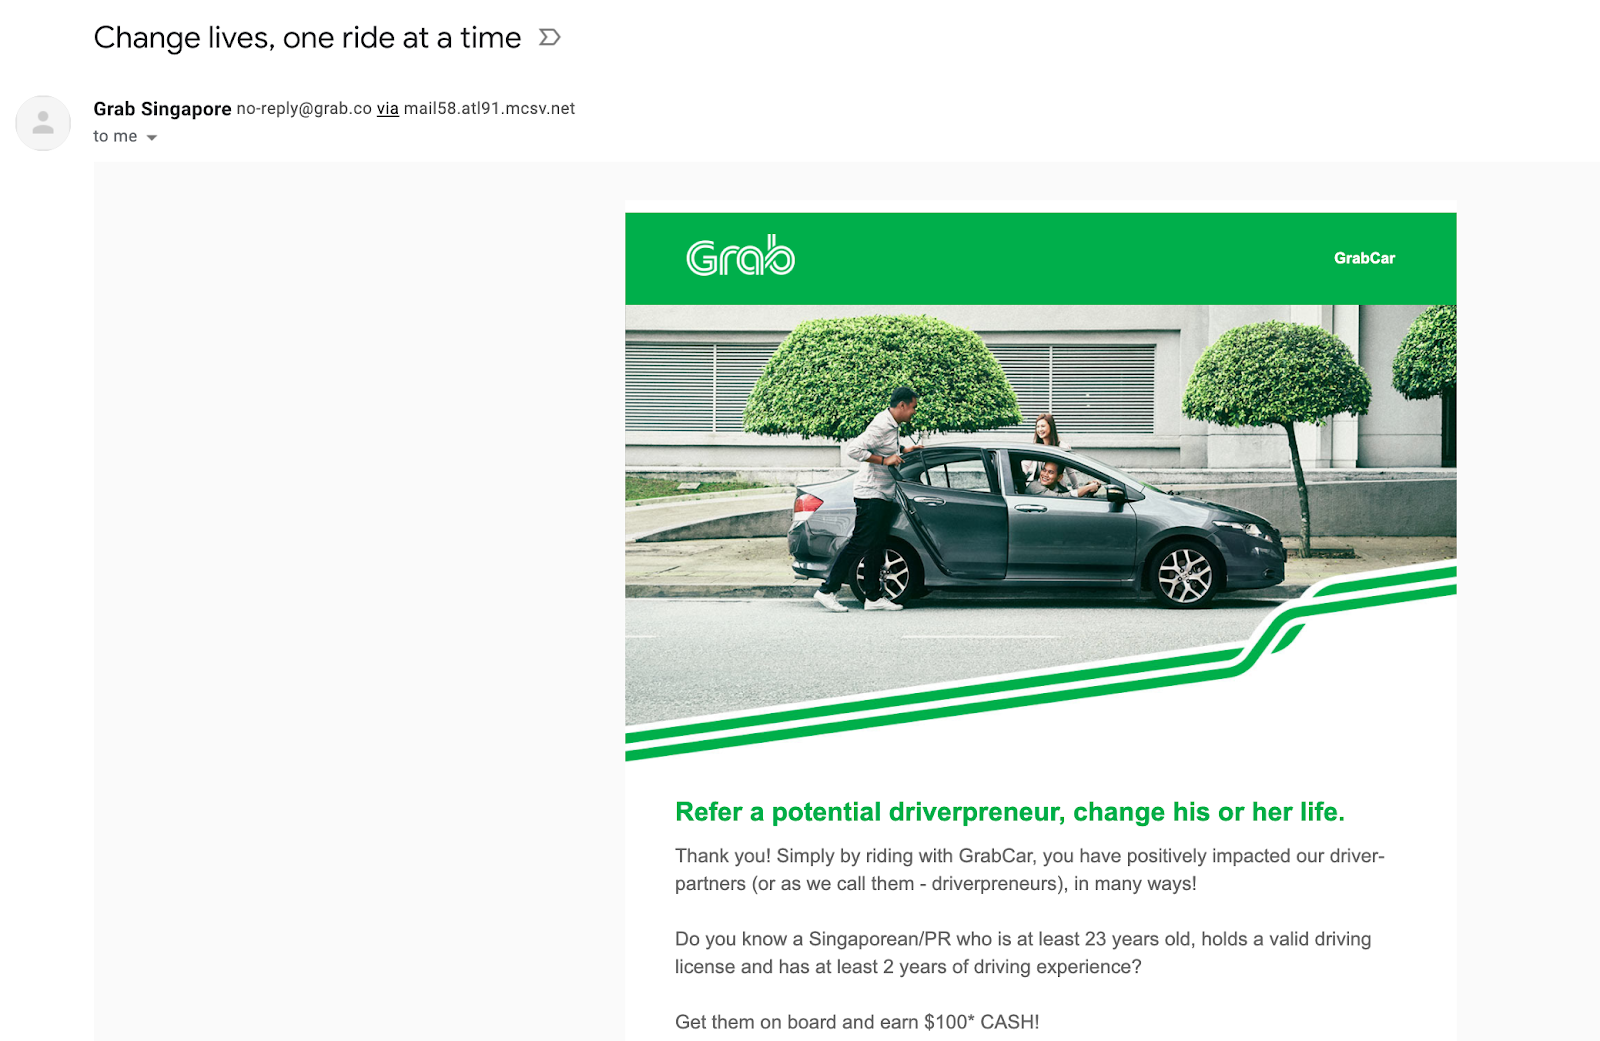 Email marketing campaign example by Grab